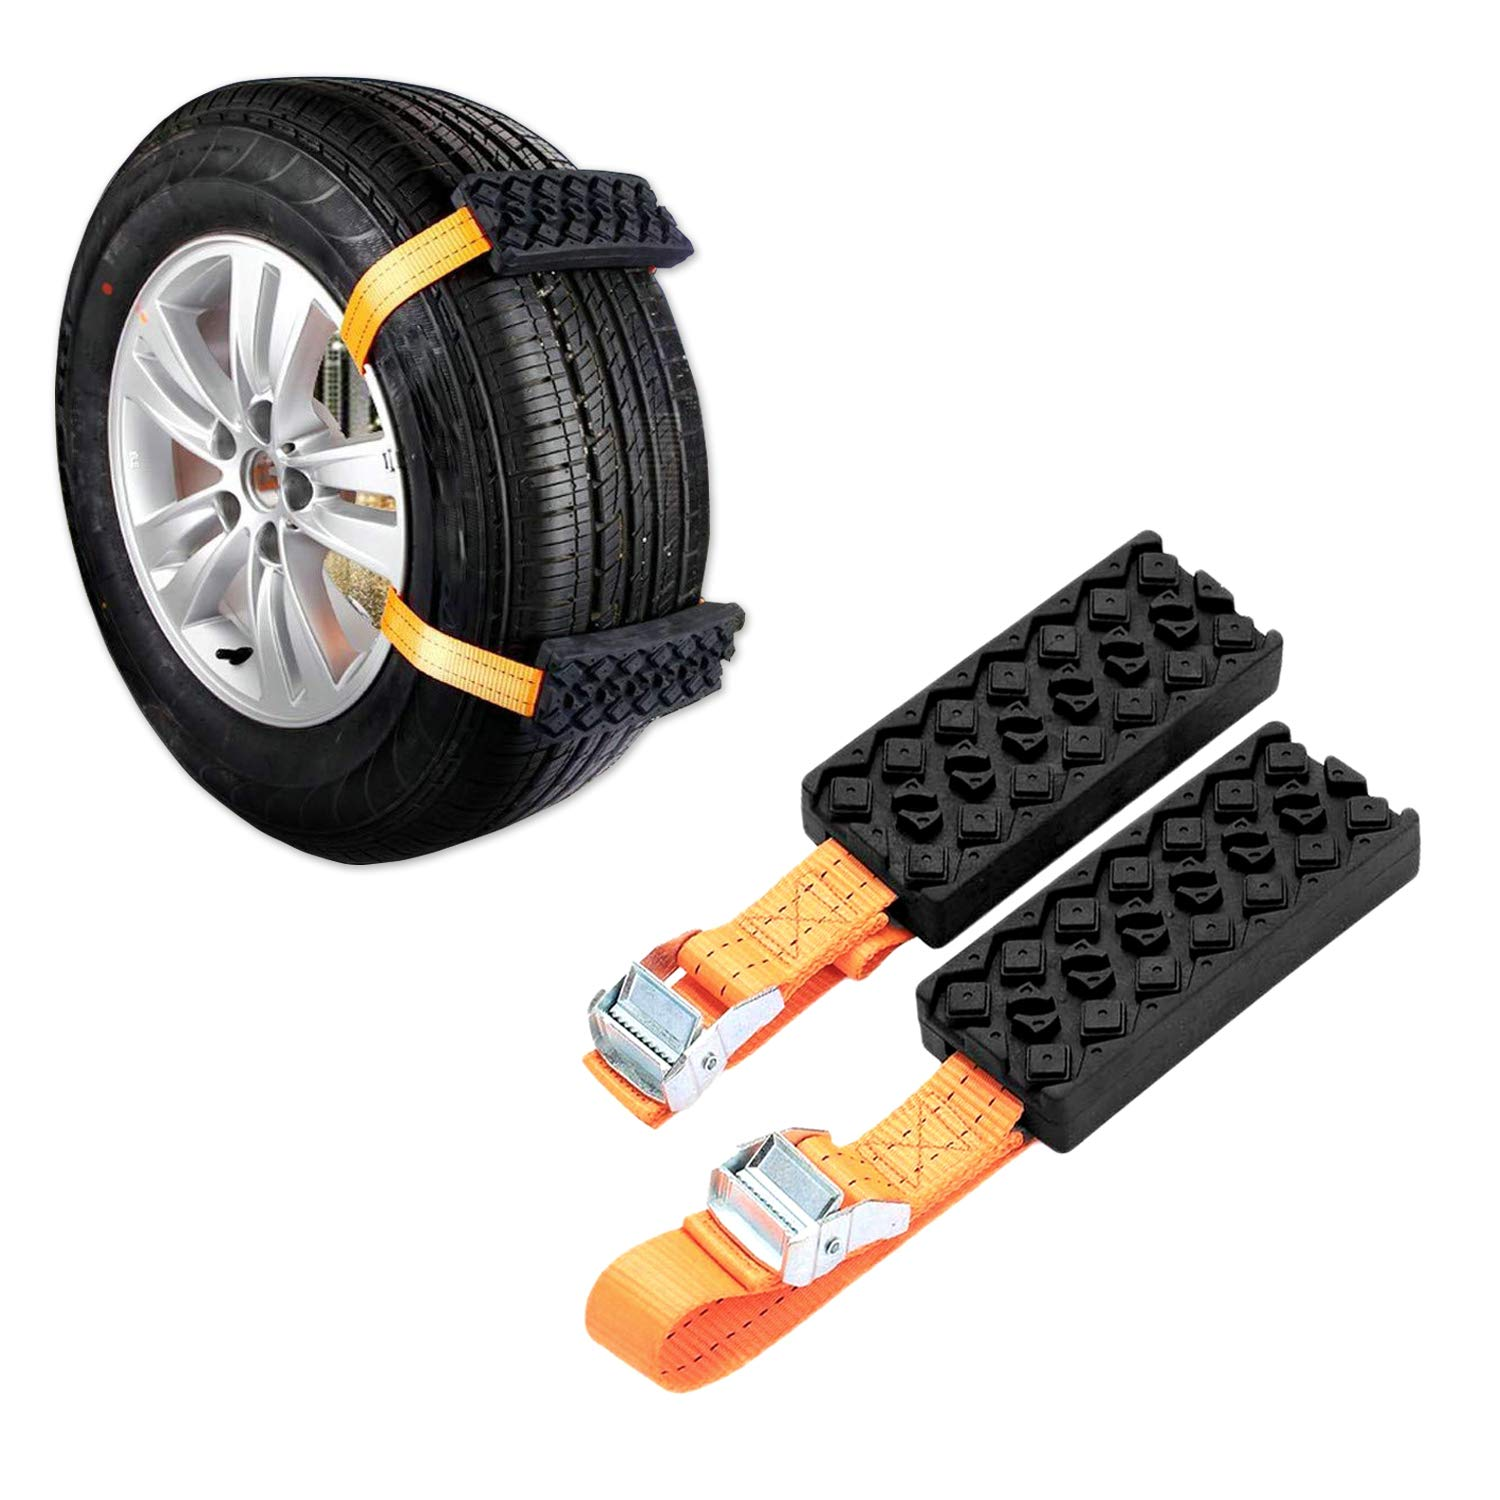 Jeebel Camp 2PCS Car Snow Chains, Universal Car Anti-Skid Rubber Nylon Snow Mud Chain Emergency Anti-Slip Tire Straps Traction - Easy Installation/Removal for Car Truck & SUV on Snow Ice Mud Road